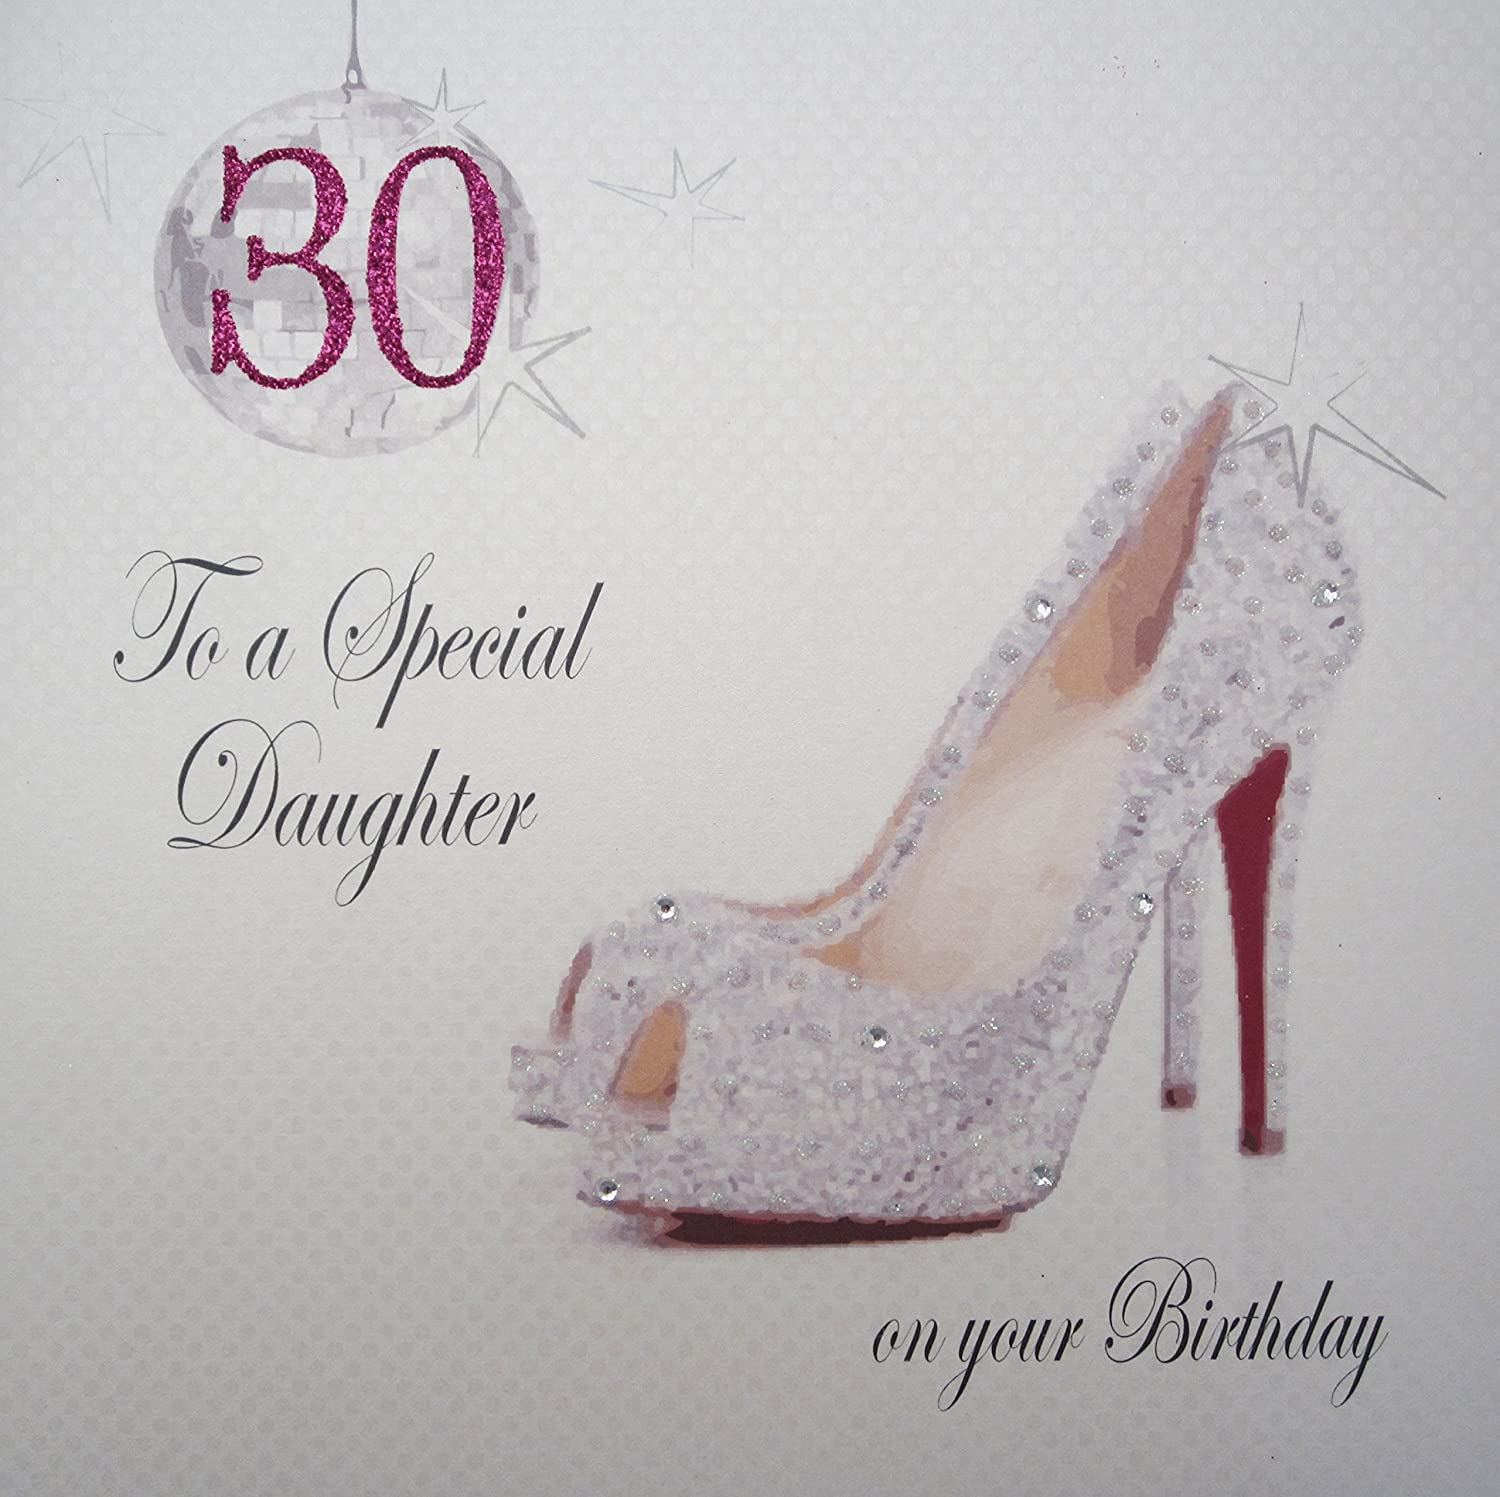 White cotton cards x30d large glitter ball shoes 30 to a special white cotton cards x30d large glitter ball shoes 30 to a special daughter on your birthday handmade 30th birthday card amazon kitchen home kristyandbryce Choice Image